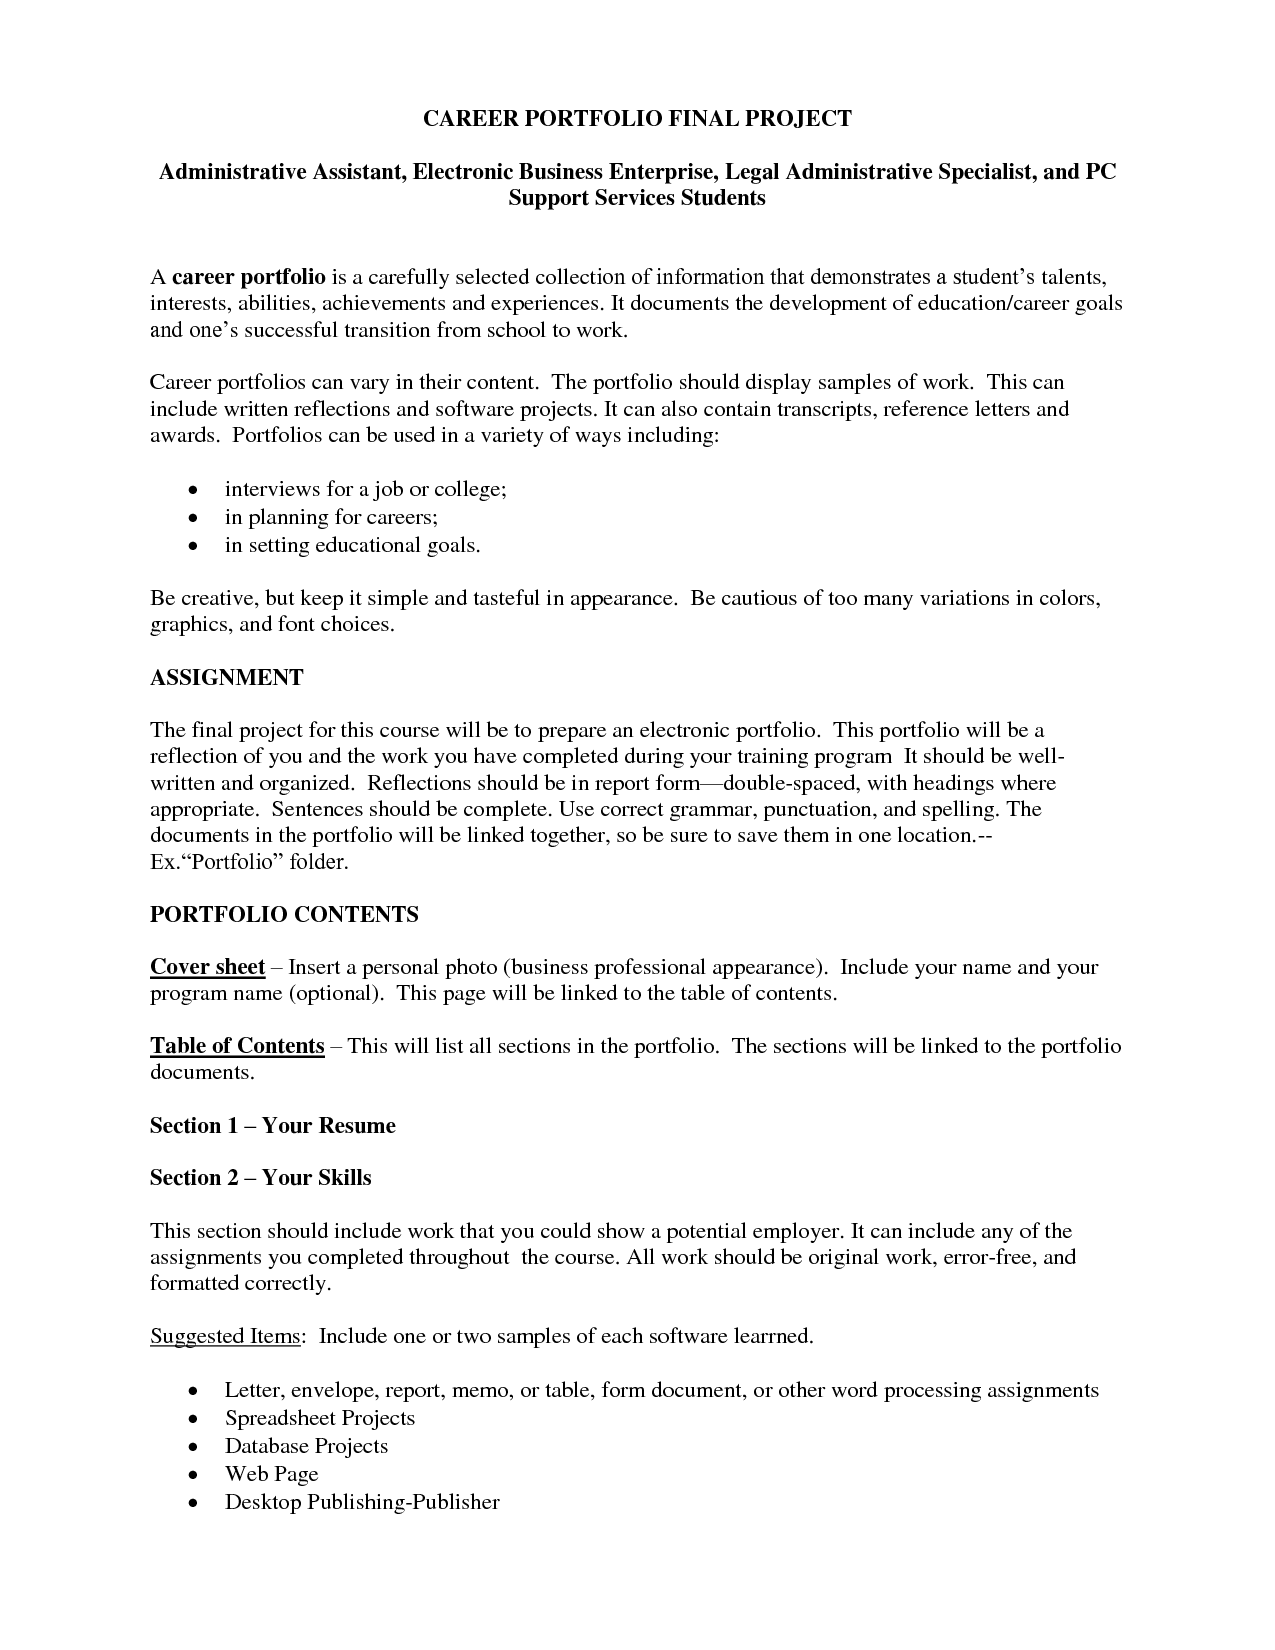 Executive Assistant Resume Samples Medical Surgical Nursing Care 2Nd Editionburke Test Bank